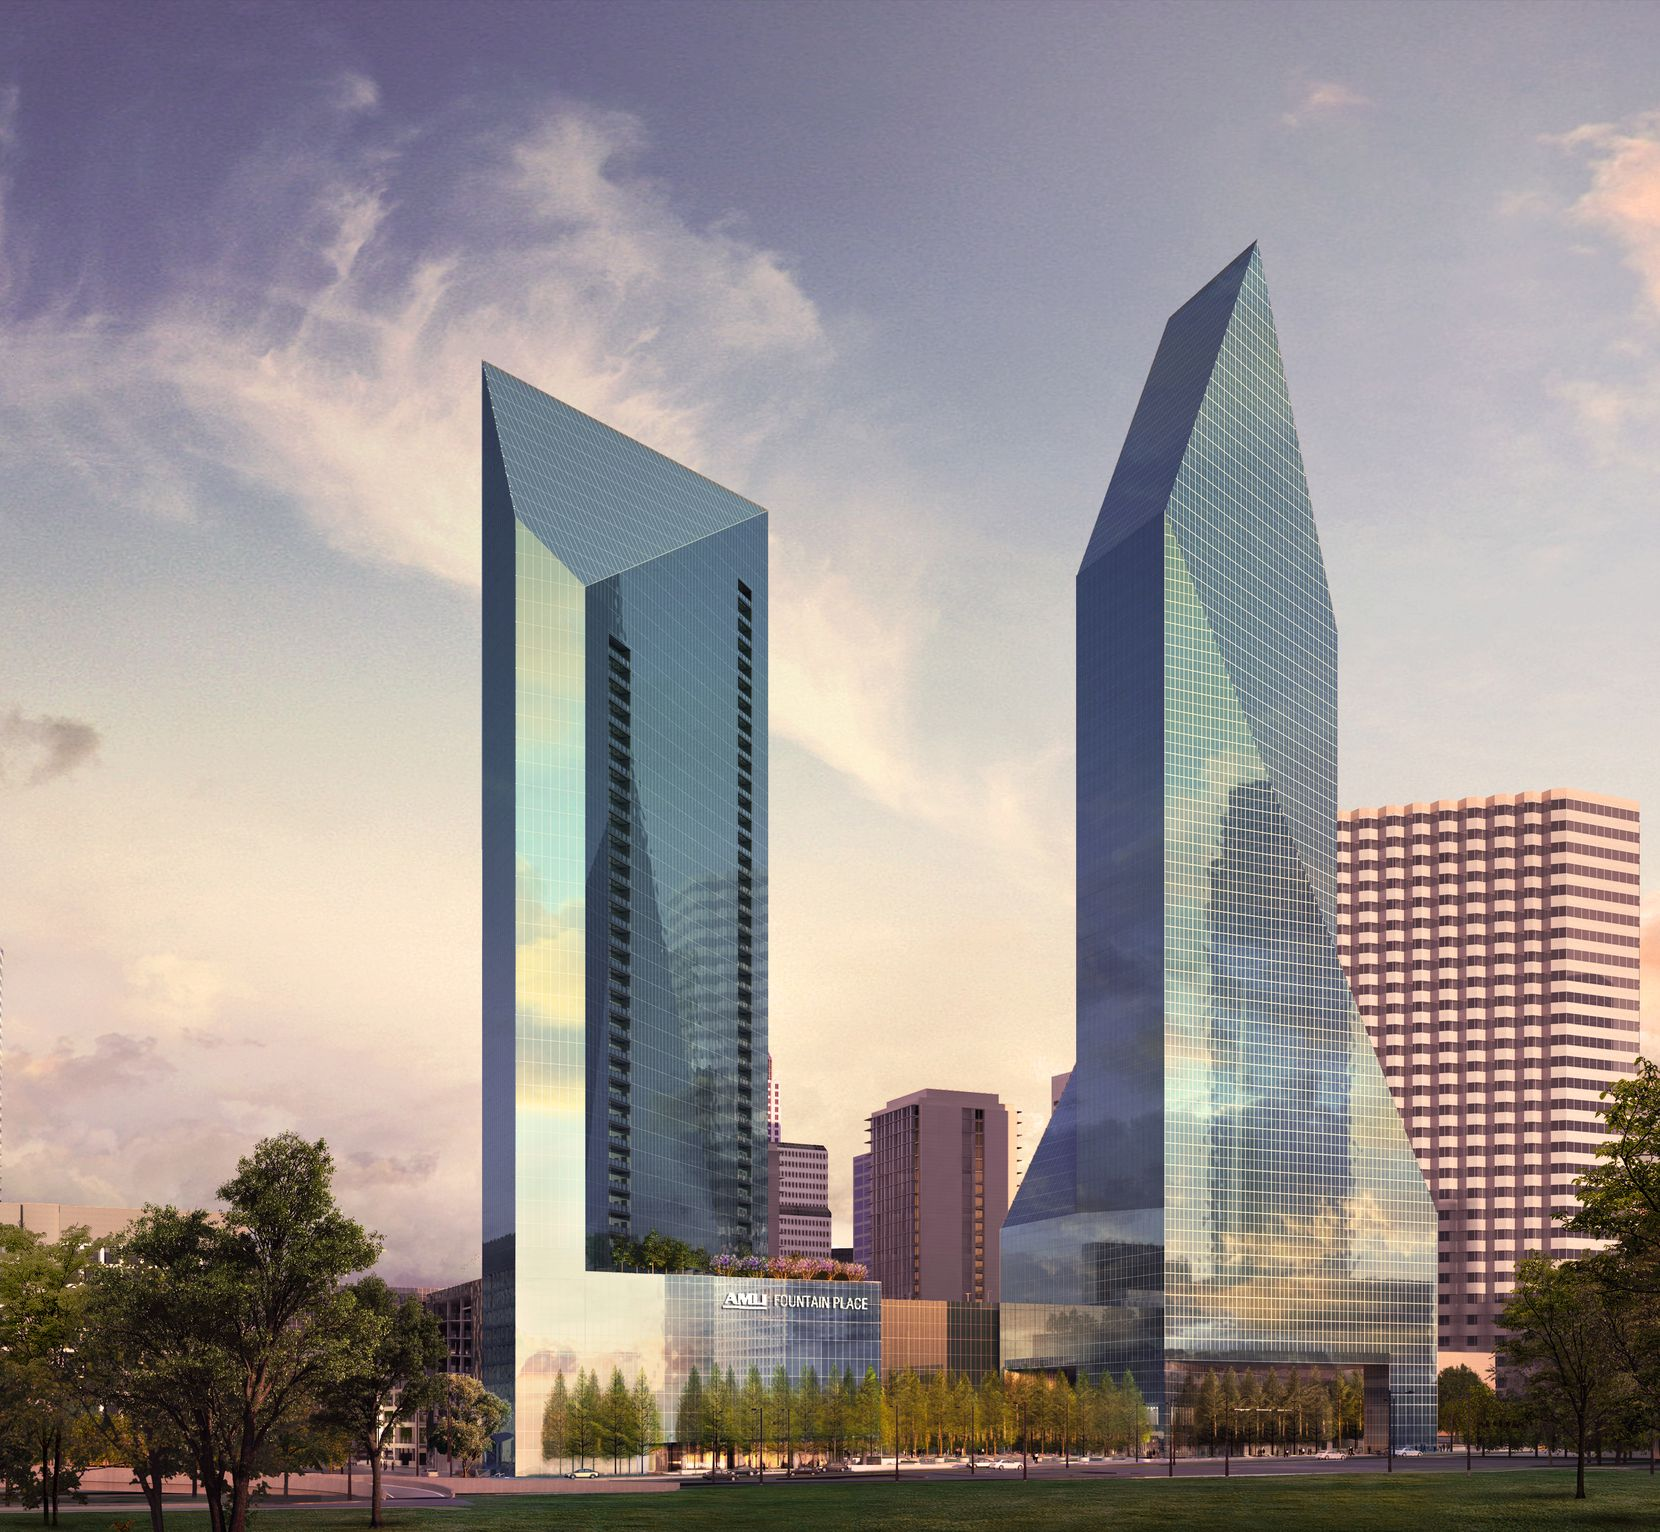 Chicago-developer Amli Residential is building the tallest tower in downtown Dallas in almost three decades. The 45-story apartment high-rise will go up next to the rocket-shaped Fountain Place skyscraper on downtown's north side.